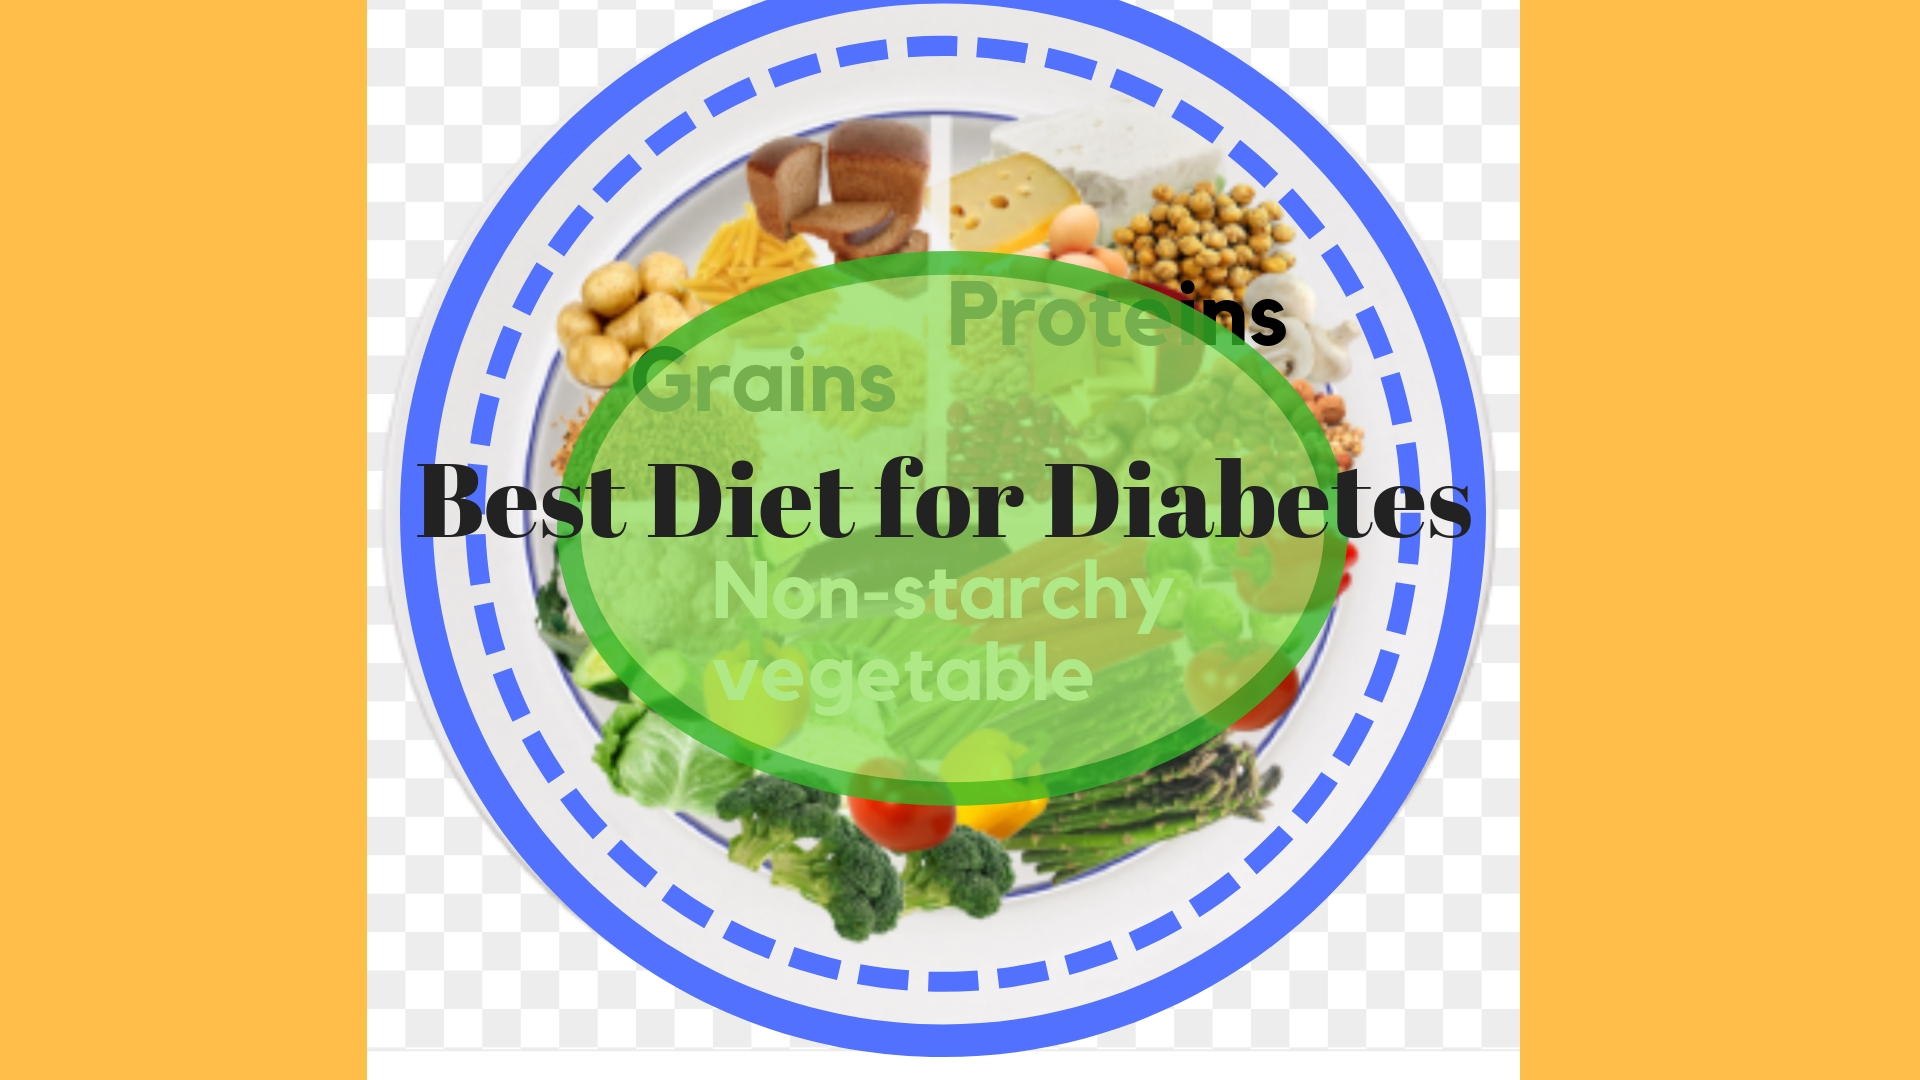 Best Diet for Diabetes